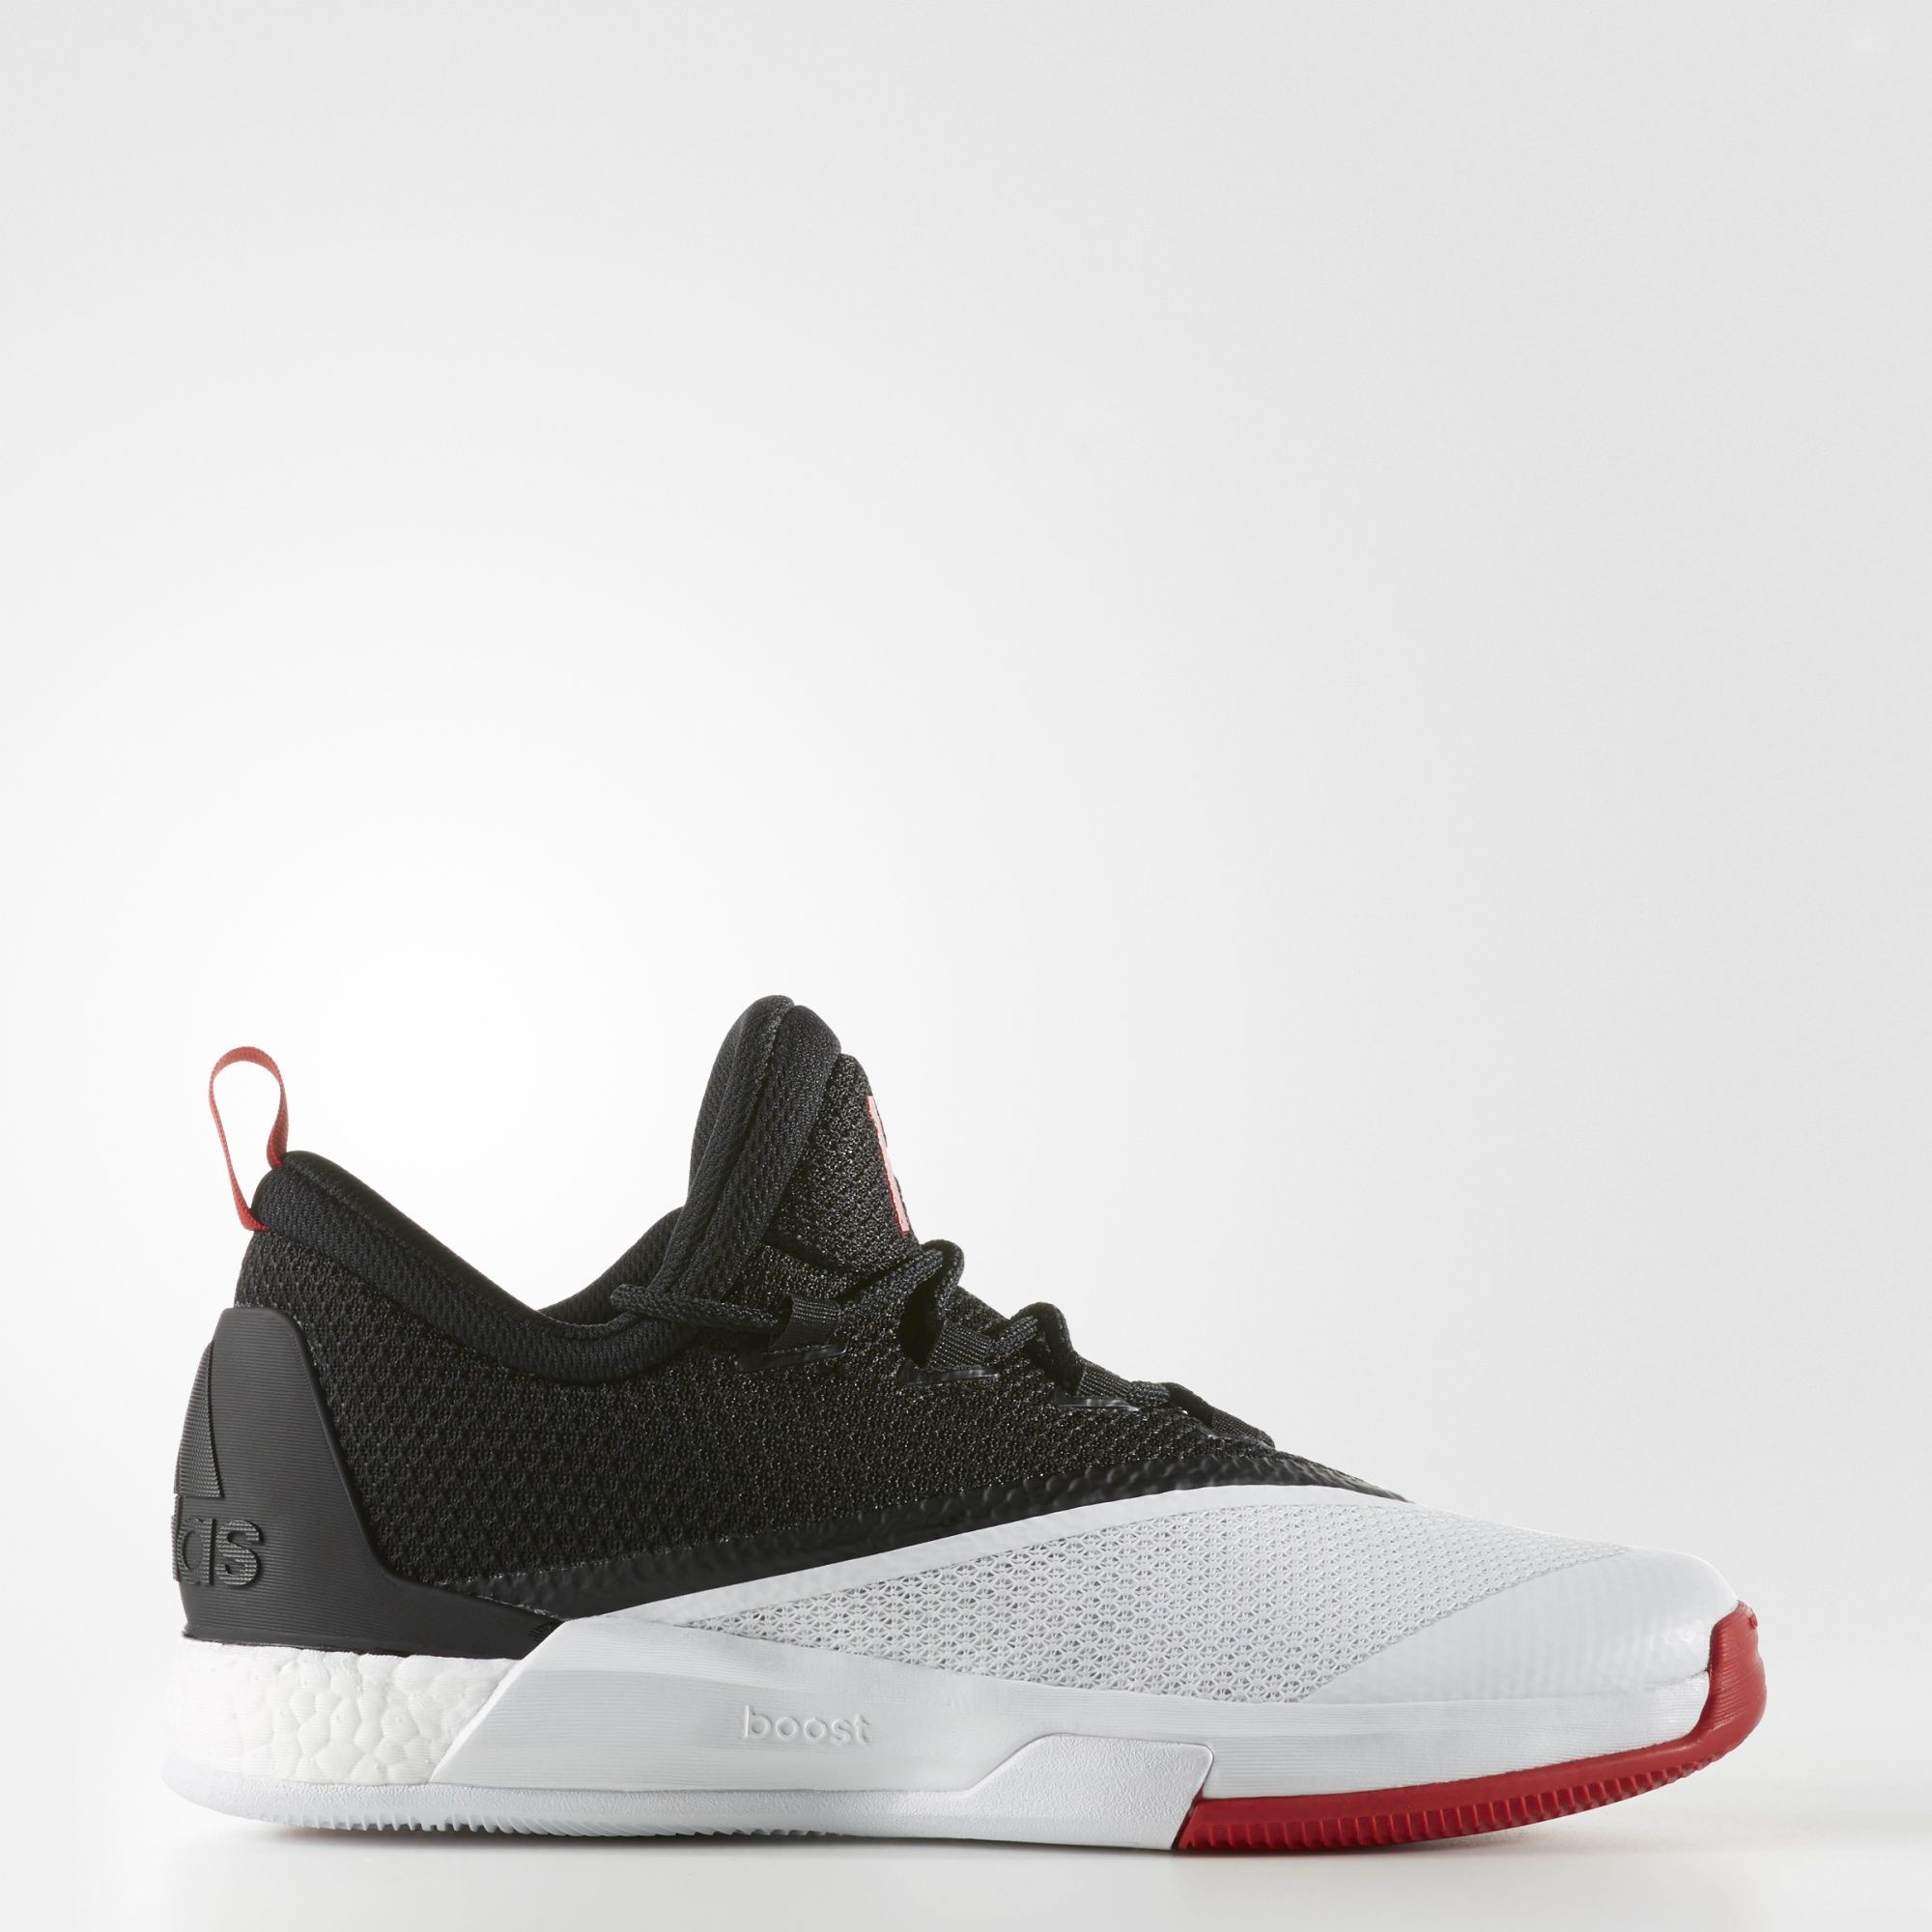 adidas - Harden PE Crazylight Boost 2.5 Low Shoes